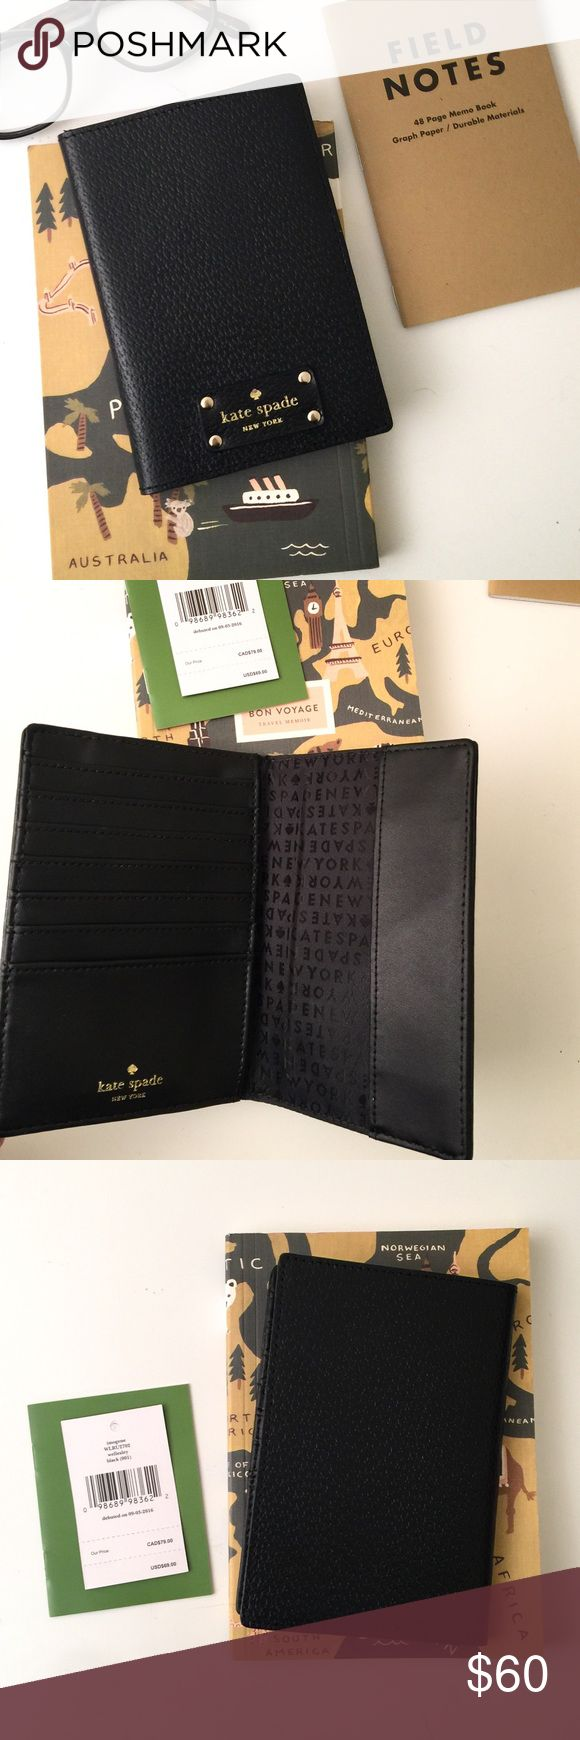 HP  Kate Spade Passport Case + Wallet We adore the whimsical yet functional style of so many Kate Spade items and this passport case is no exception.   Details: NWT. The lightweight design features multiple slots for credit cards + passport case. Additionally, it is made with custom gold hardware and genuine leather in a true black shade.   Kate Harrington Boutique does not trade or negotiate price in the comment section. However, we may consider reasonable offers.   Happy Poshing! kate…